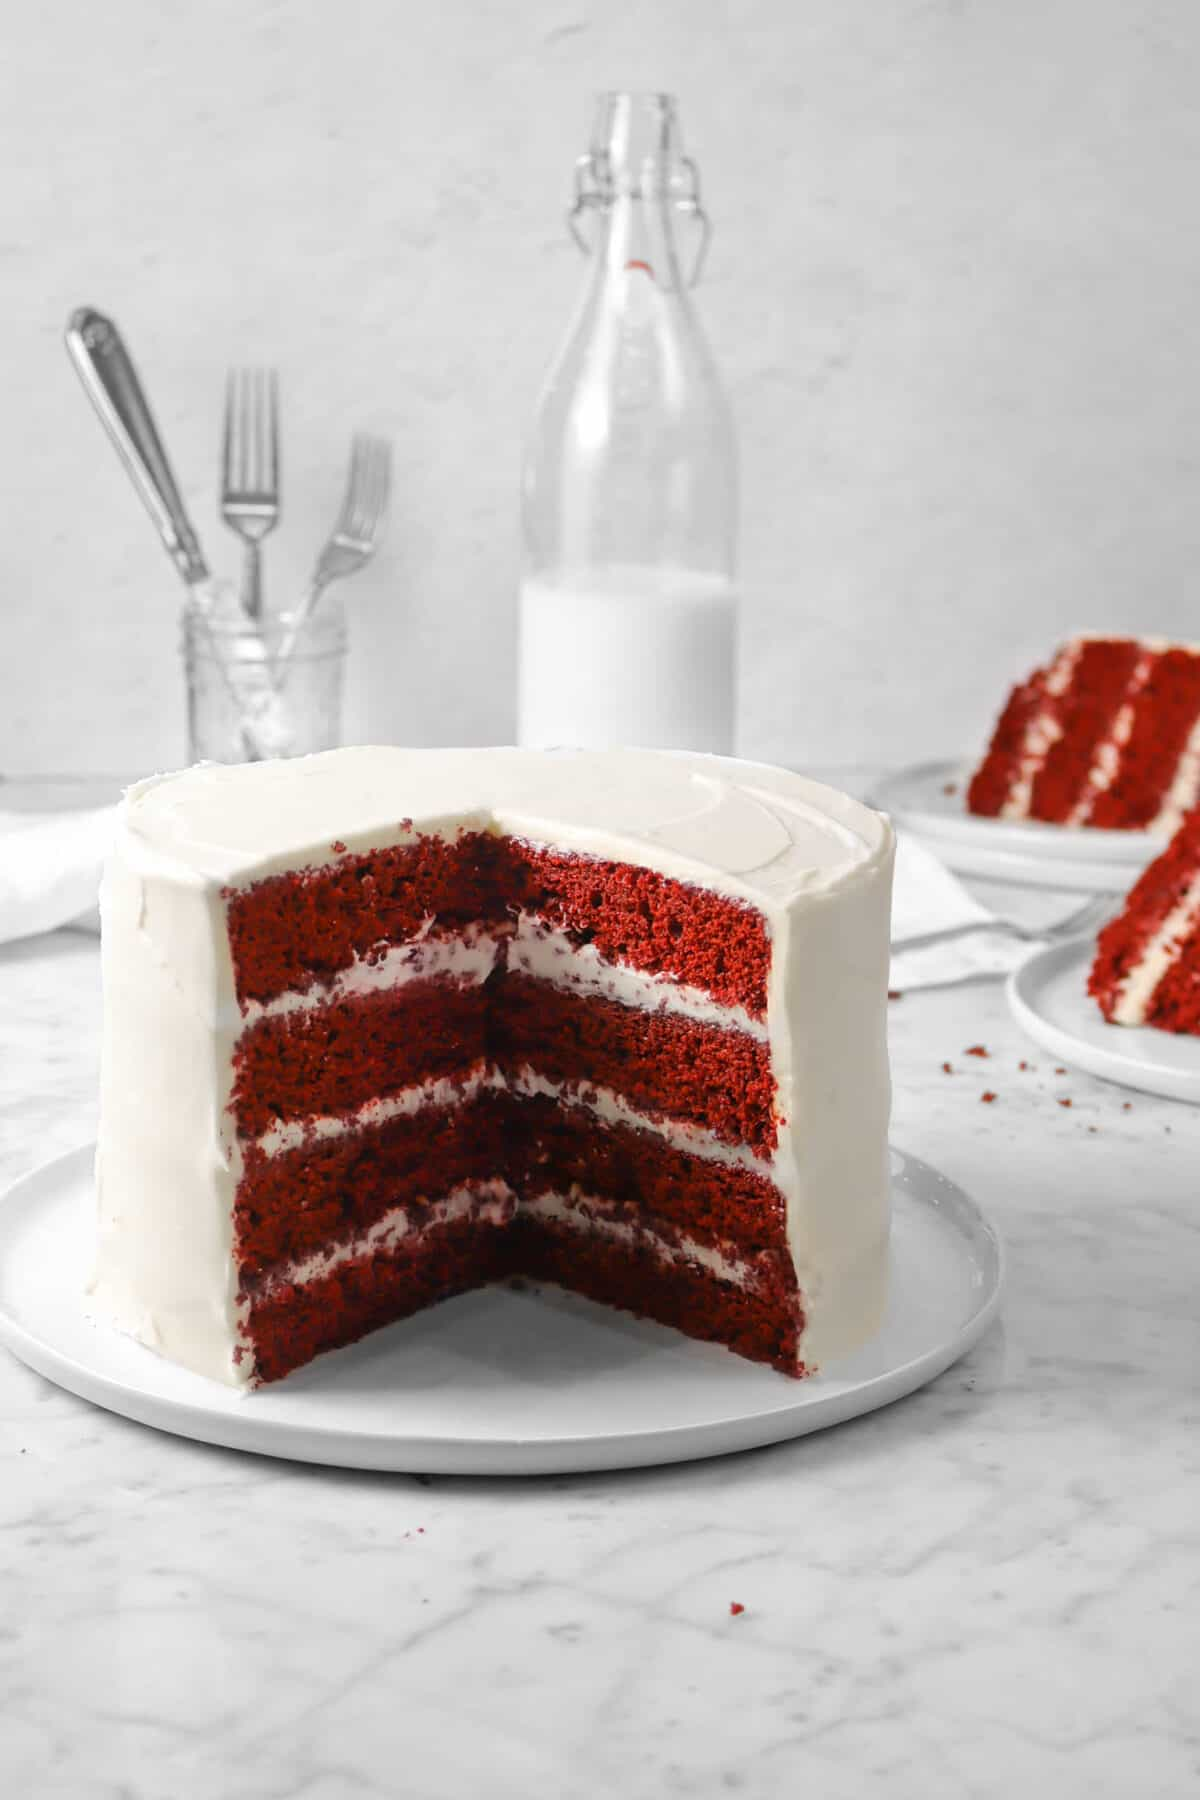 red velvet cake on a white plate with a jug of milk, a jar of forks, and two slices of cake